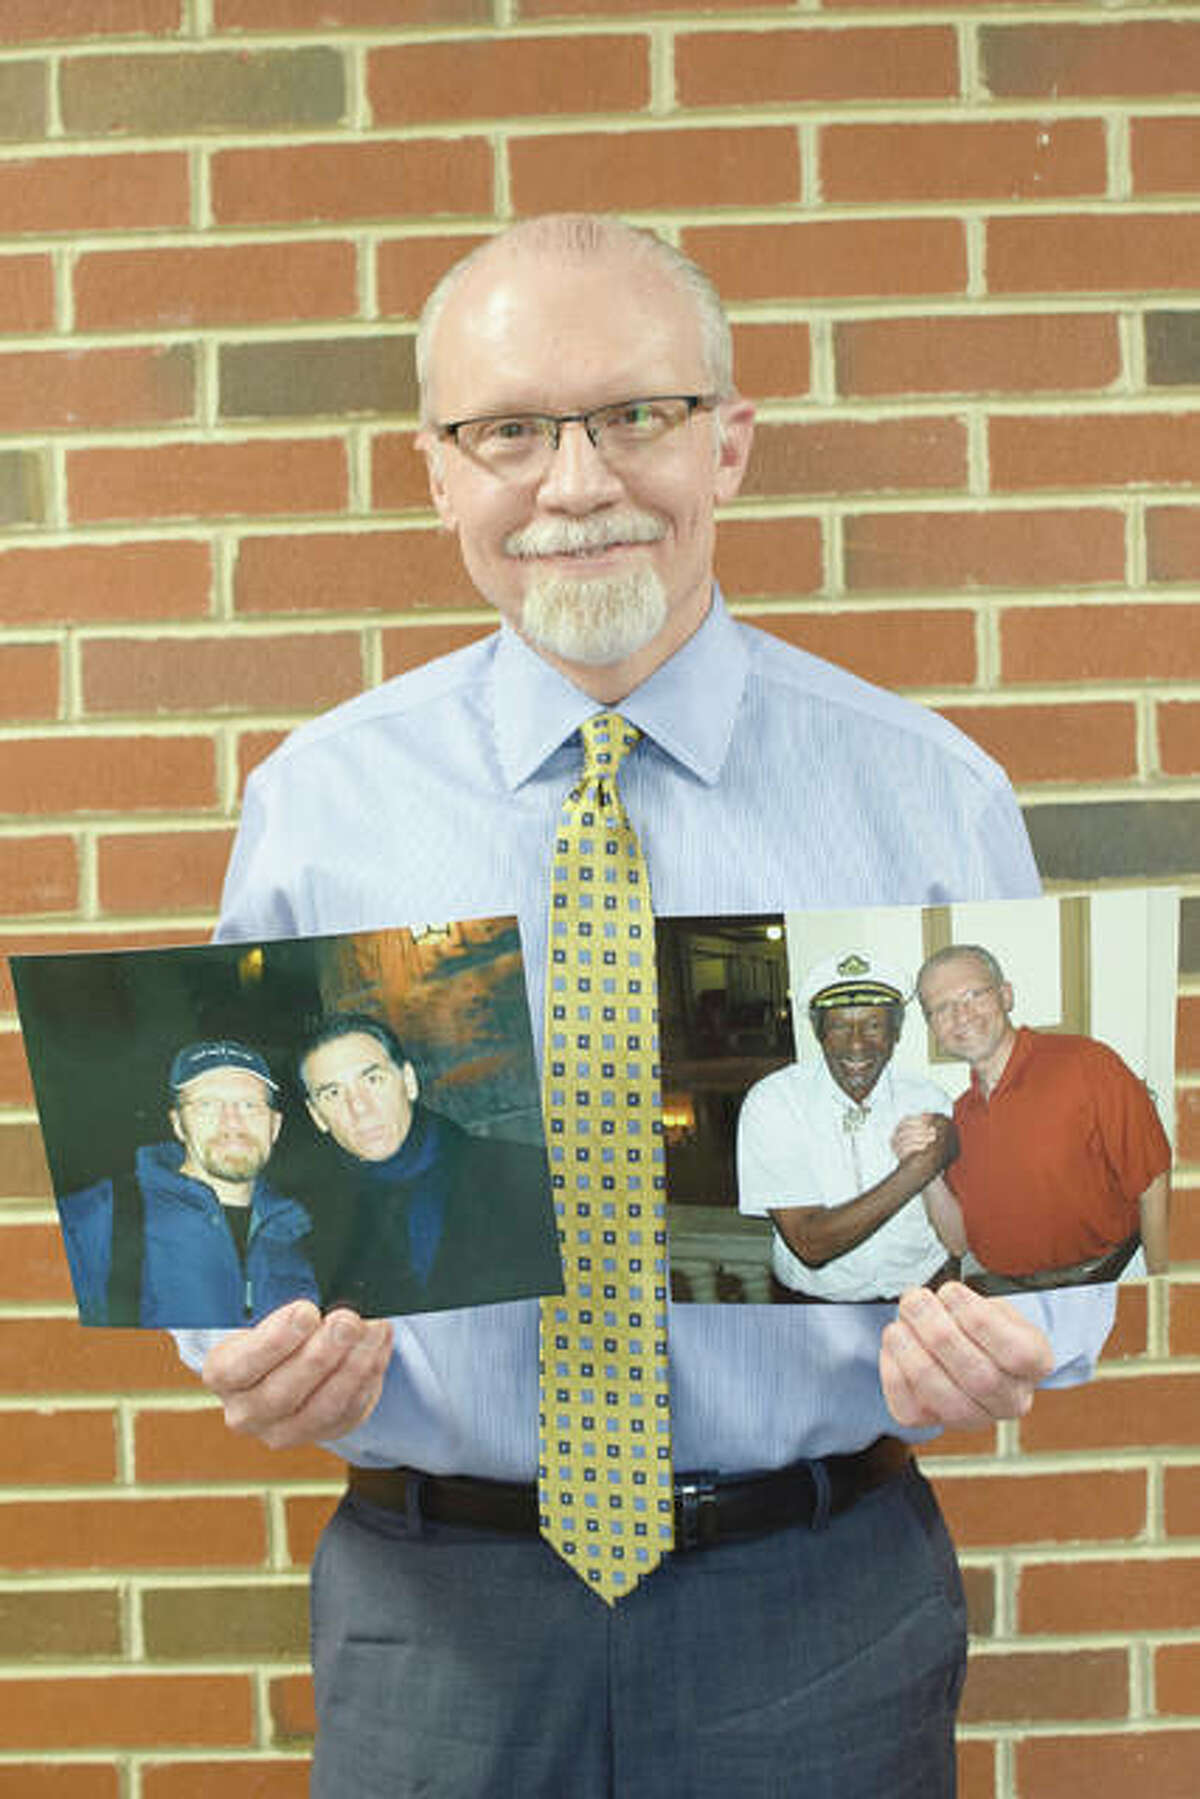 Kevin Eckhoff displays photos he had taken with comedian Michael Richards and musician Chuck Berry.